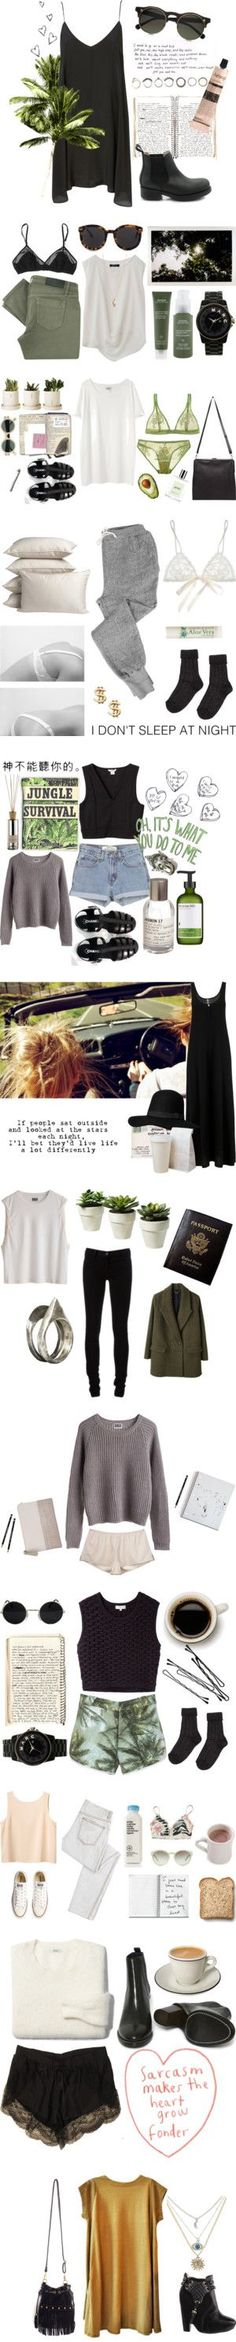 """Europe"" by emleh ❤ liked on Polyvore"